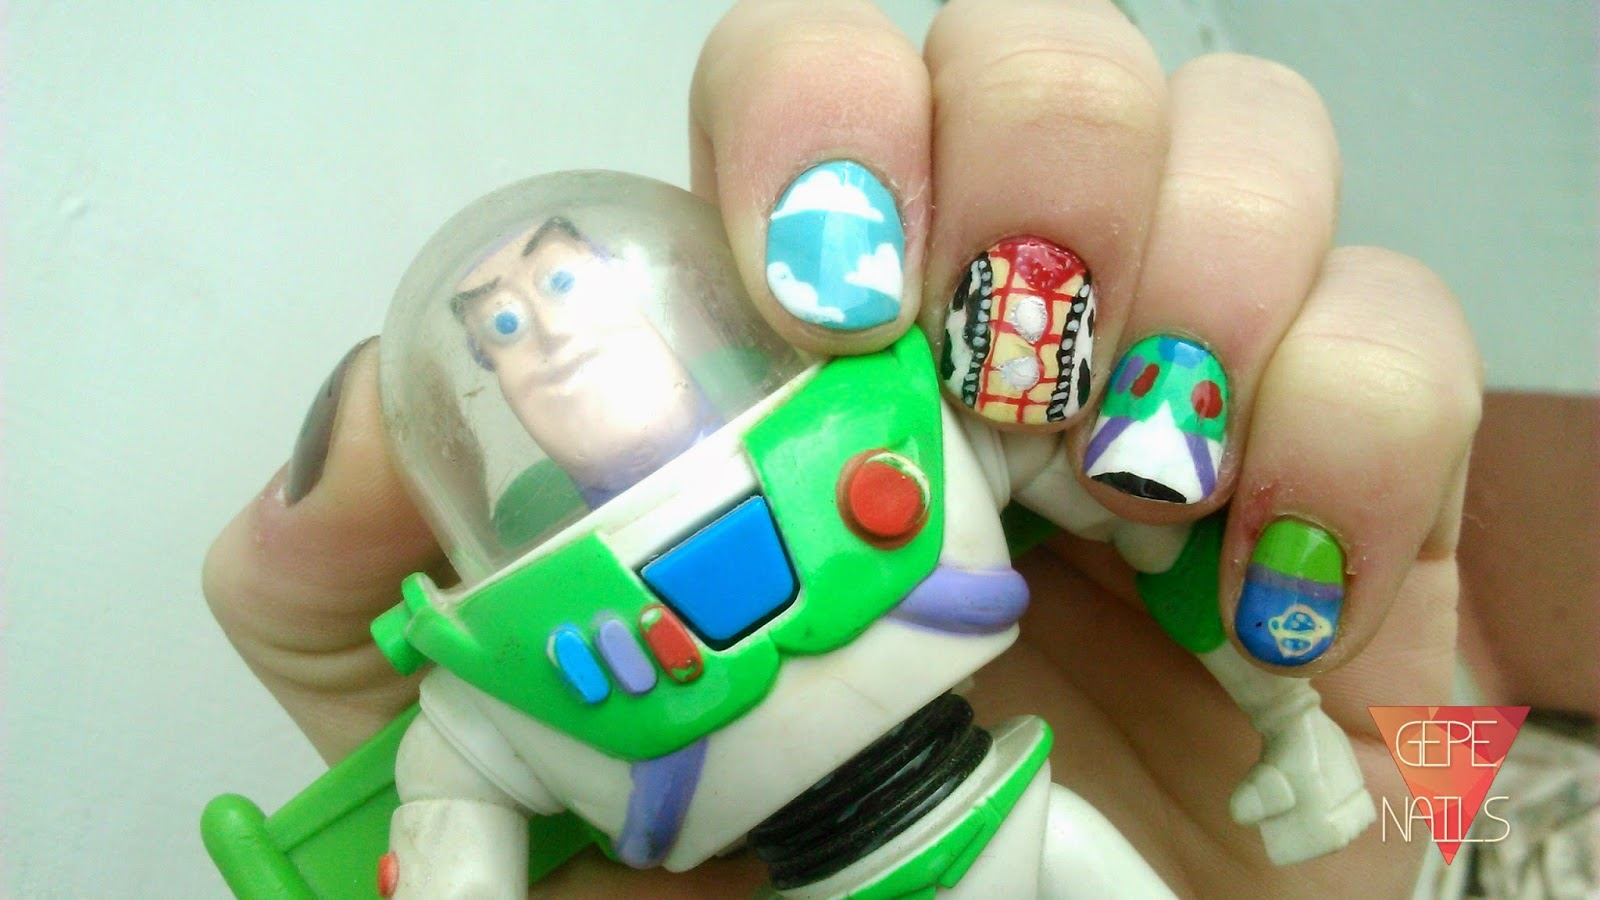 Gepe-nails: TOY STORY